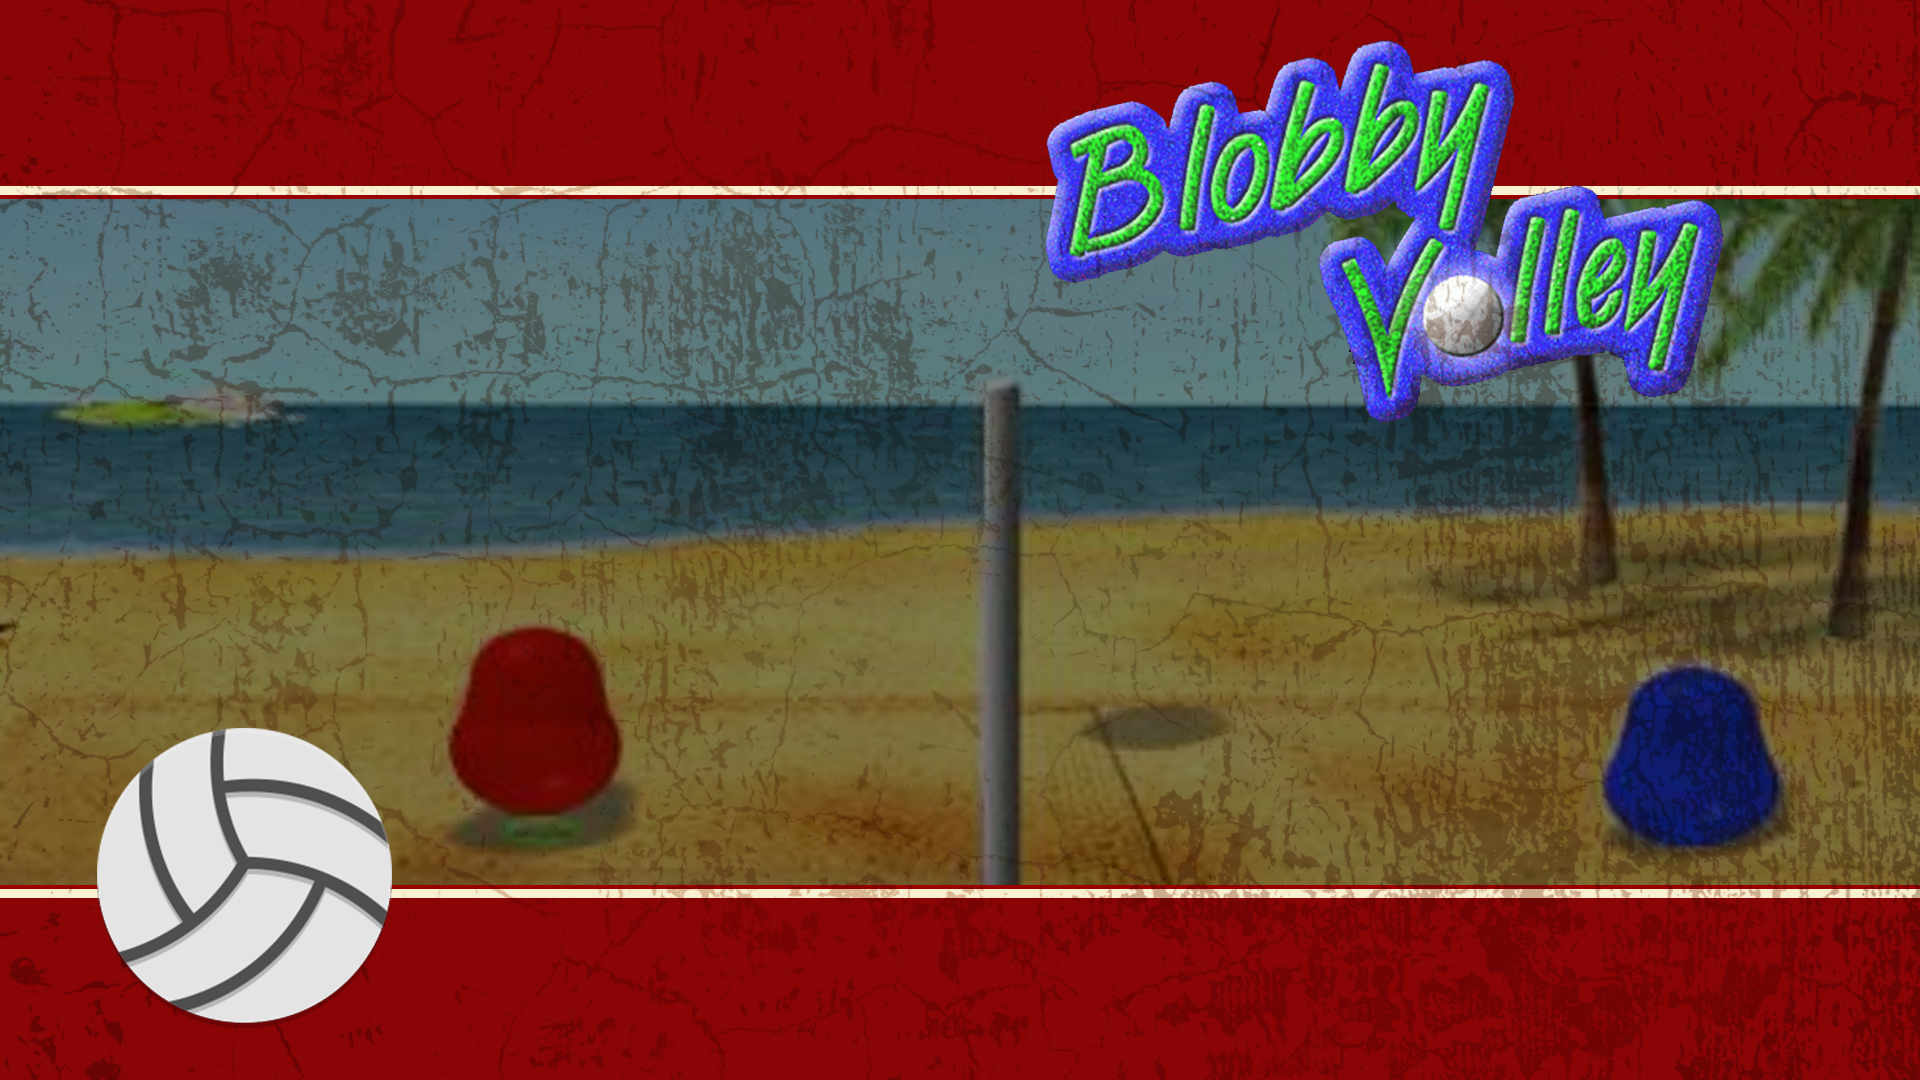 14.00 - Blobby Volley